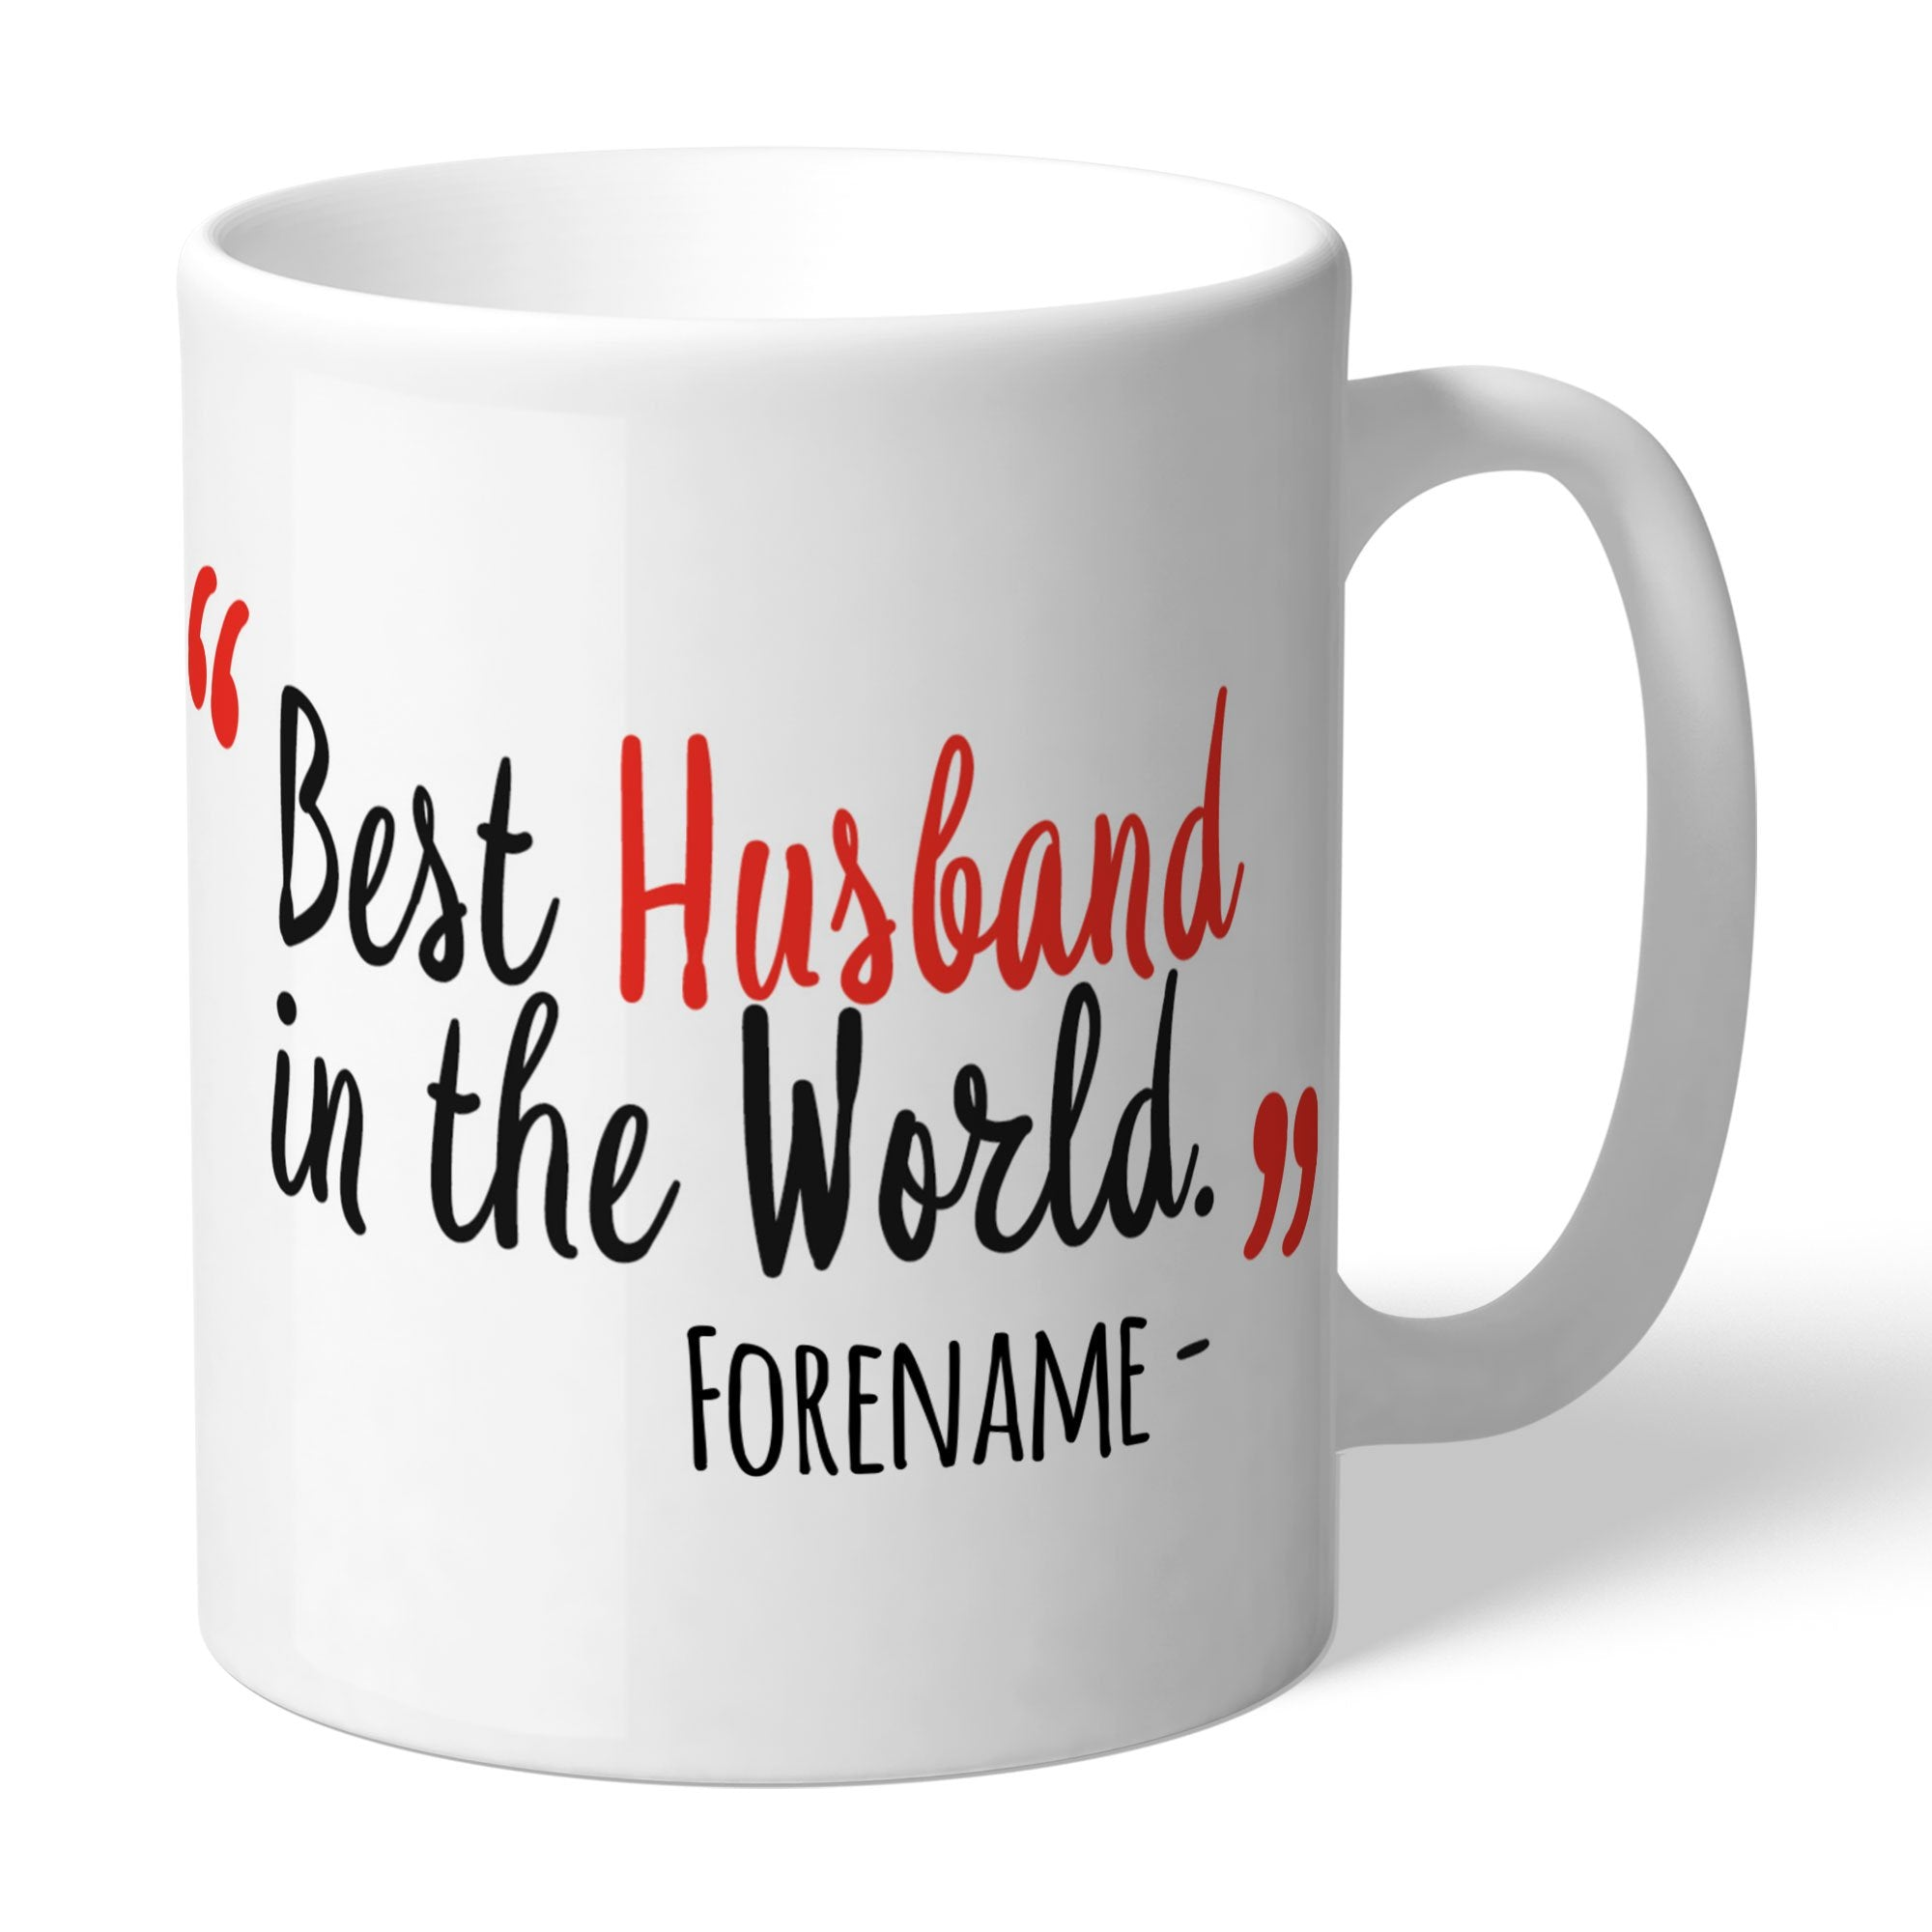 Crystal Palace FC Best Husband In The World Mug, Kitchen & Dining by Glamorous Gifts UK